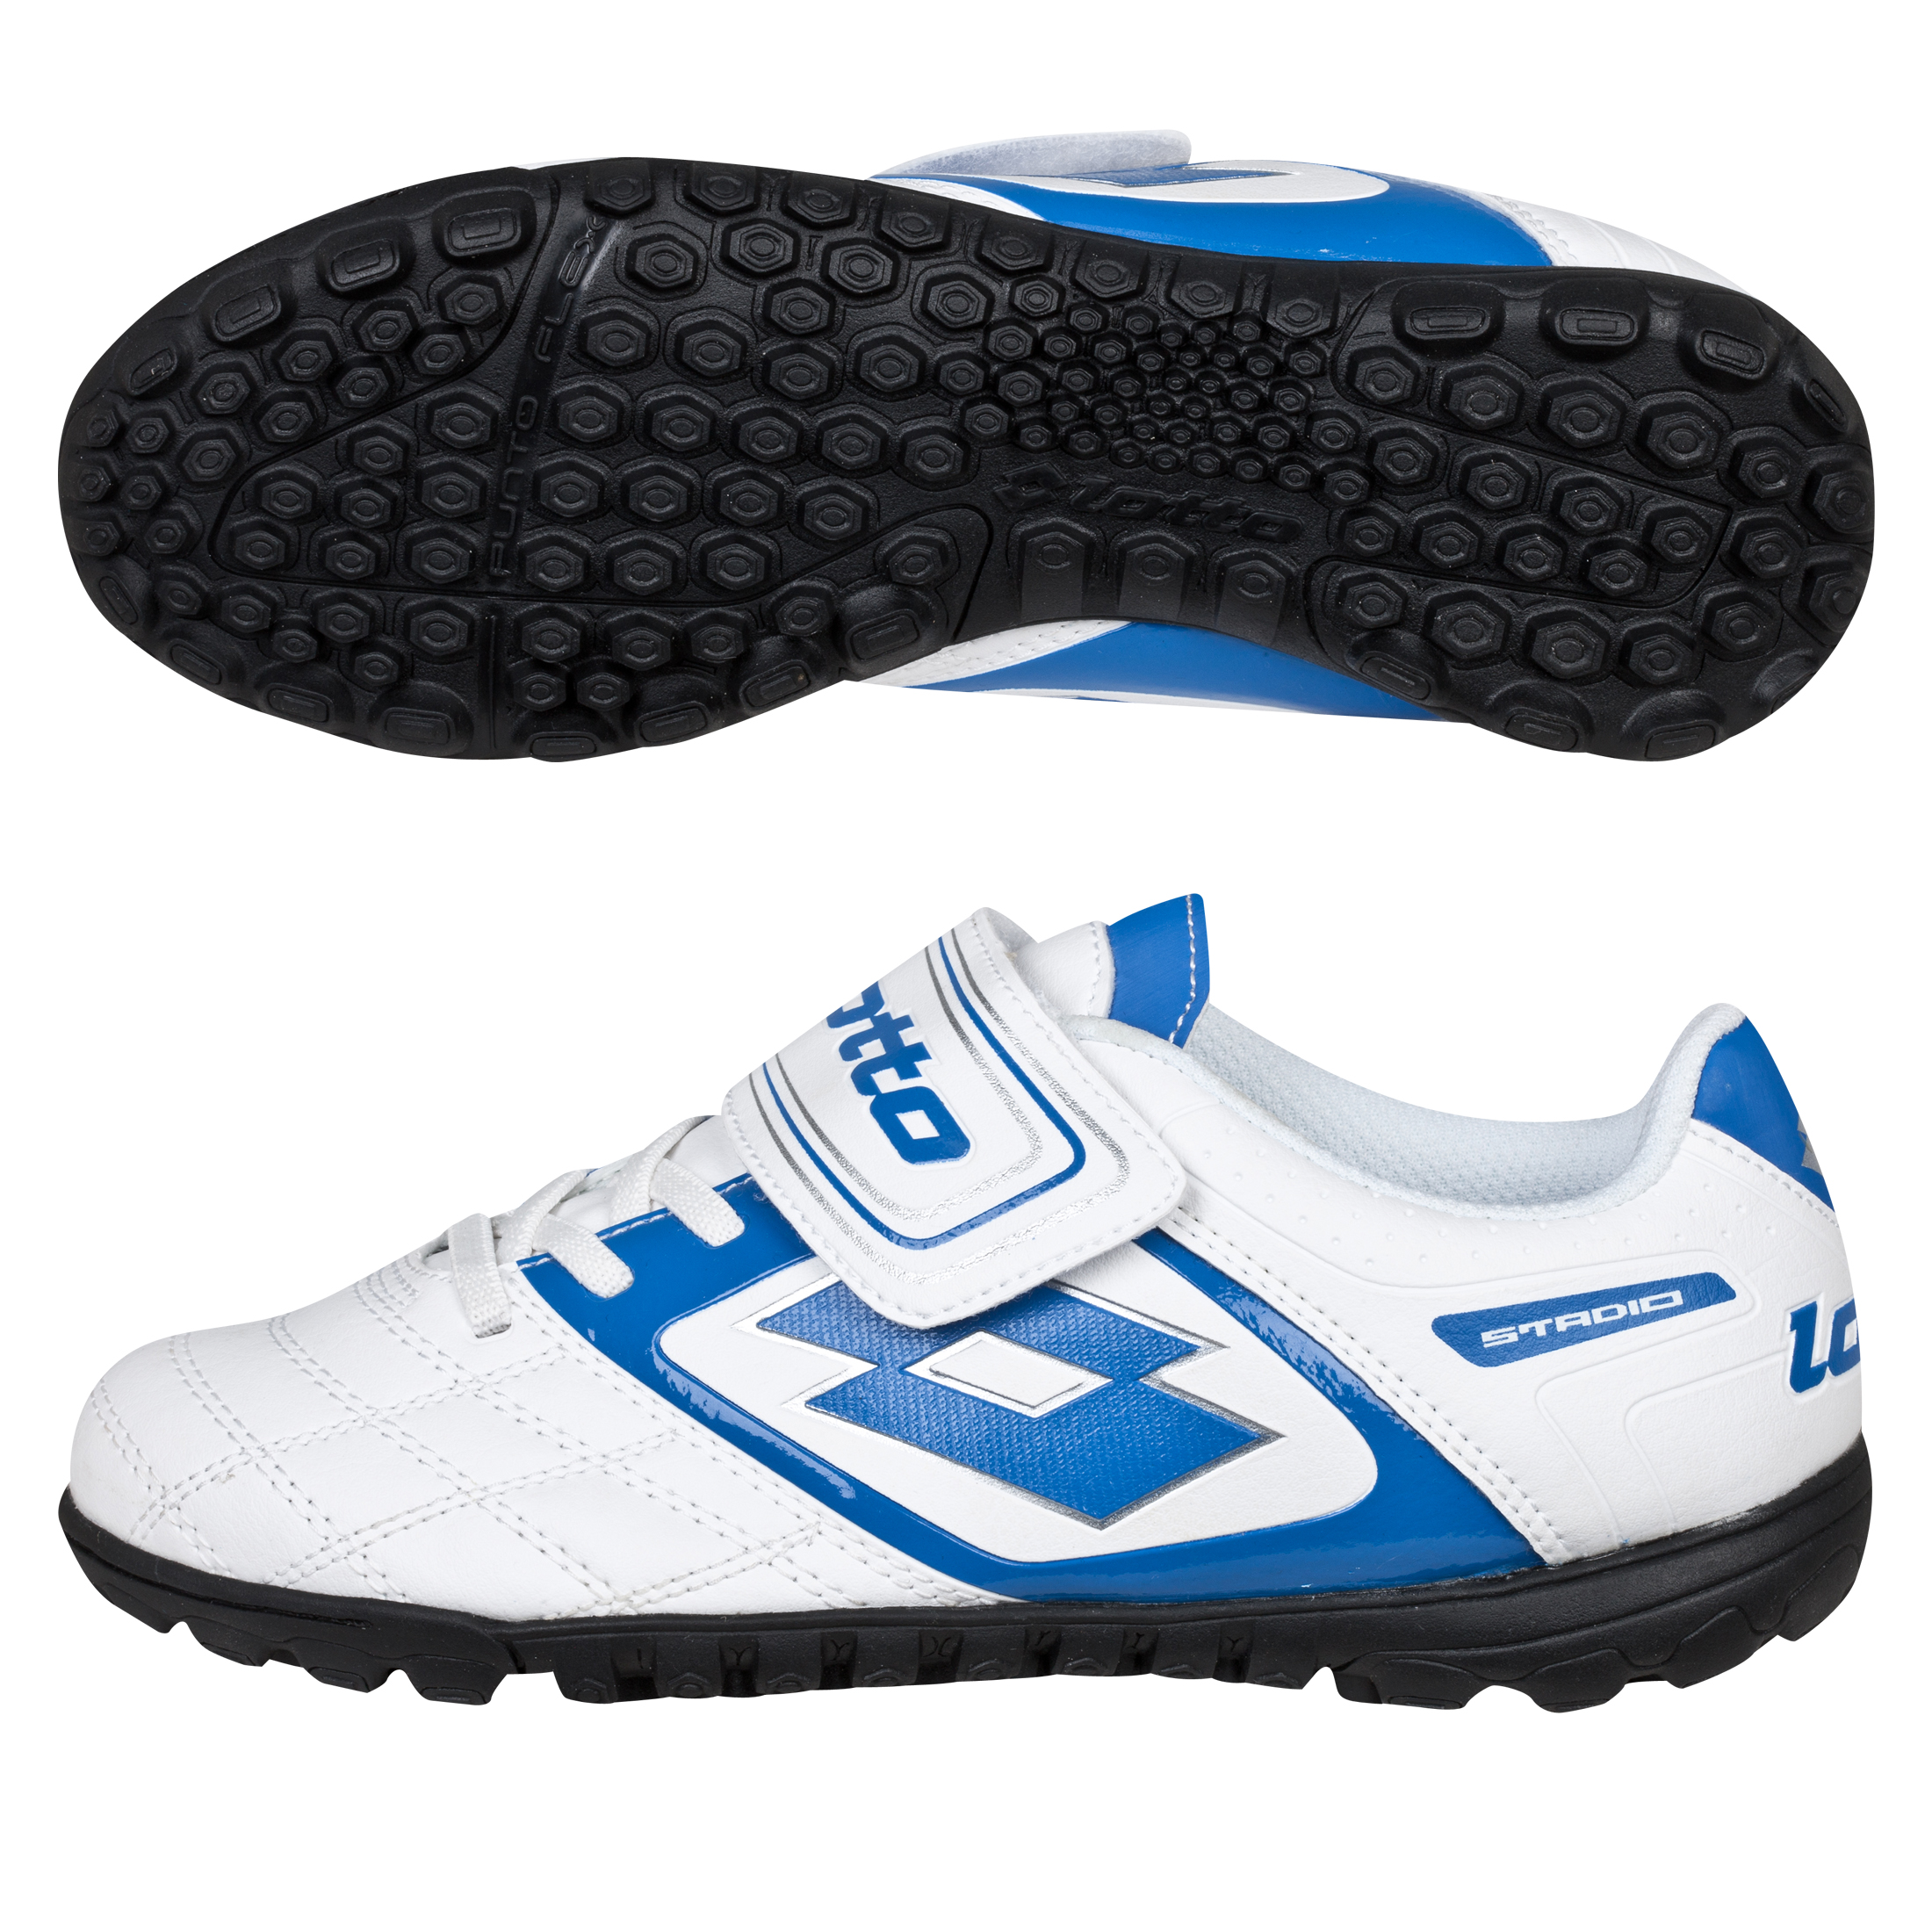 Lotto Stadio Potenza.II 700 Astro Turf Trainers - White/Blue - Kids